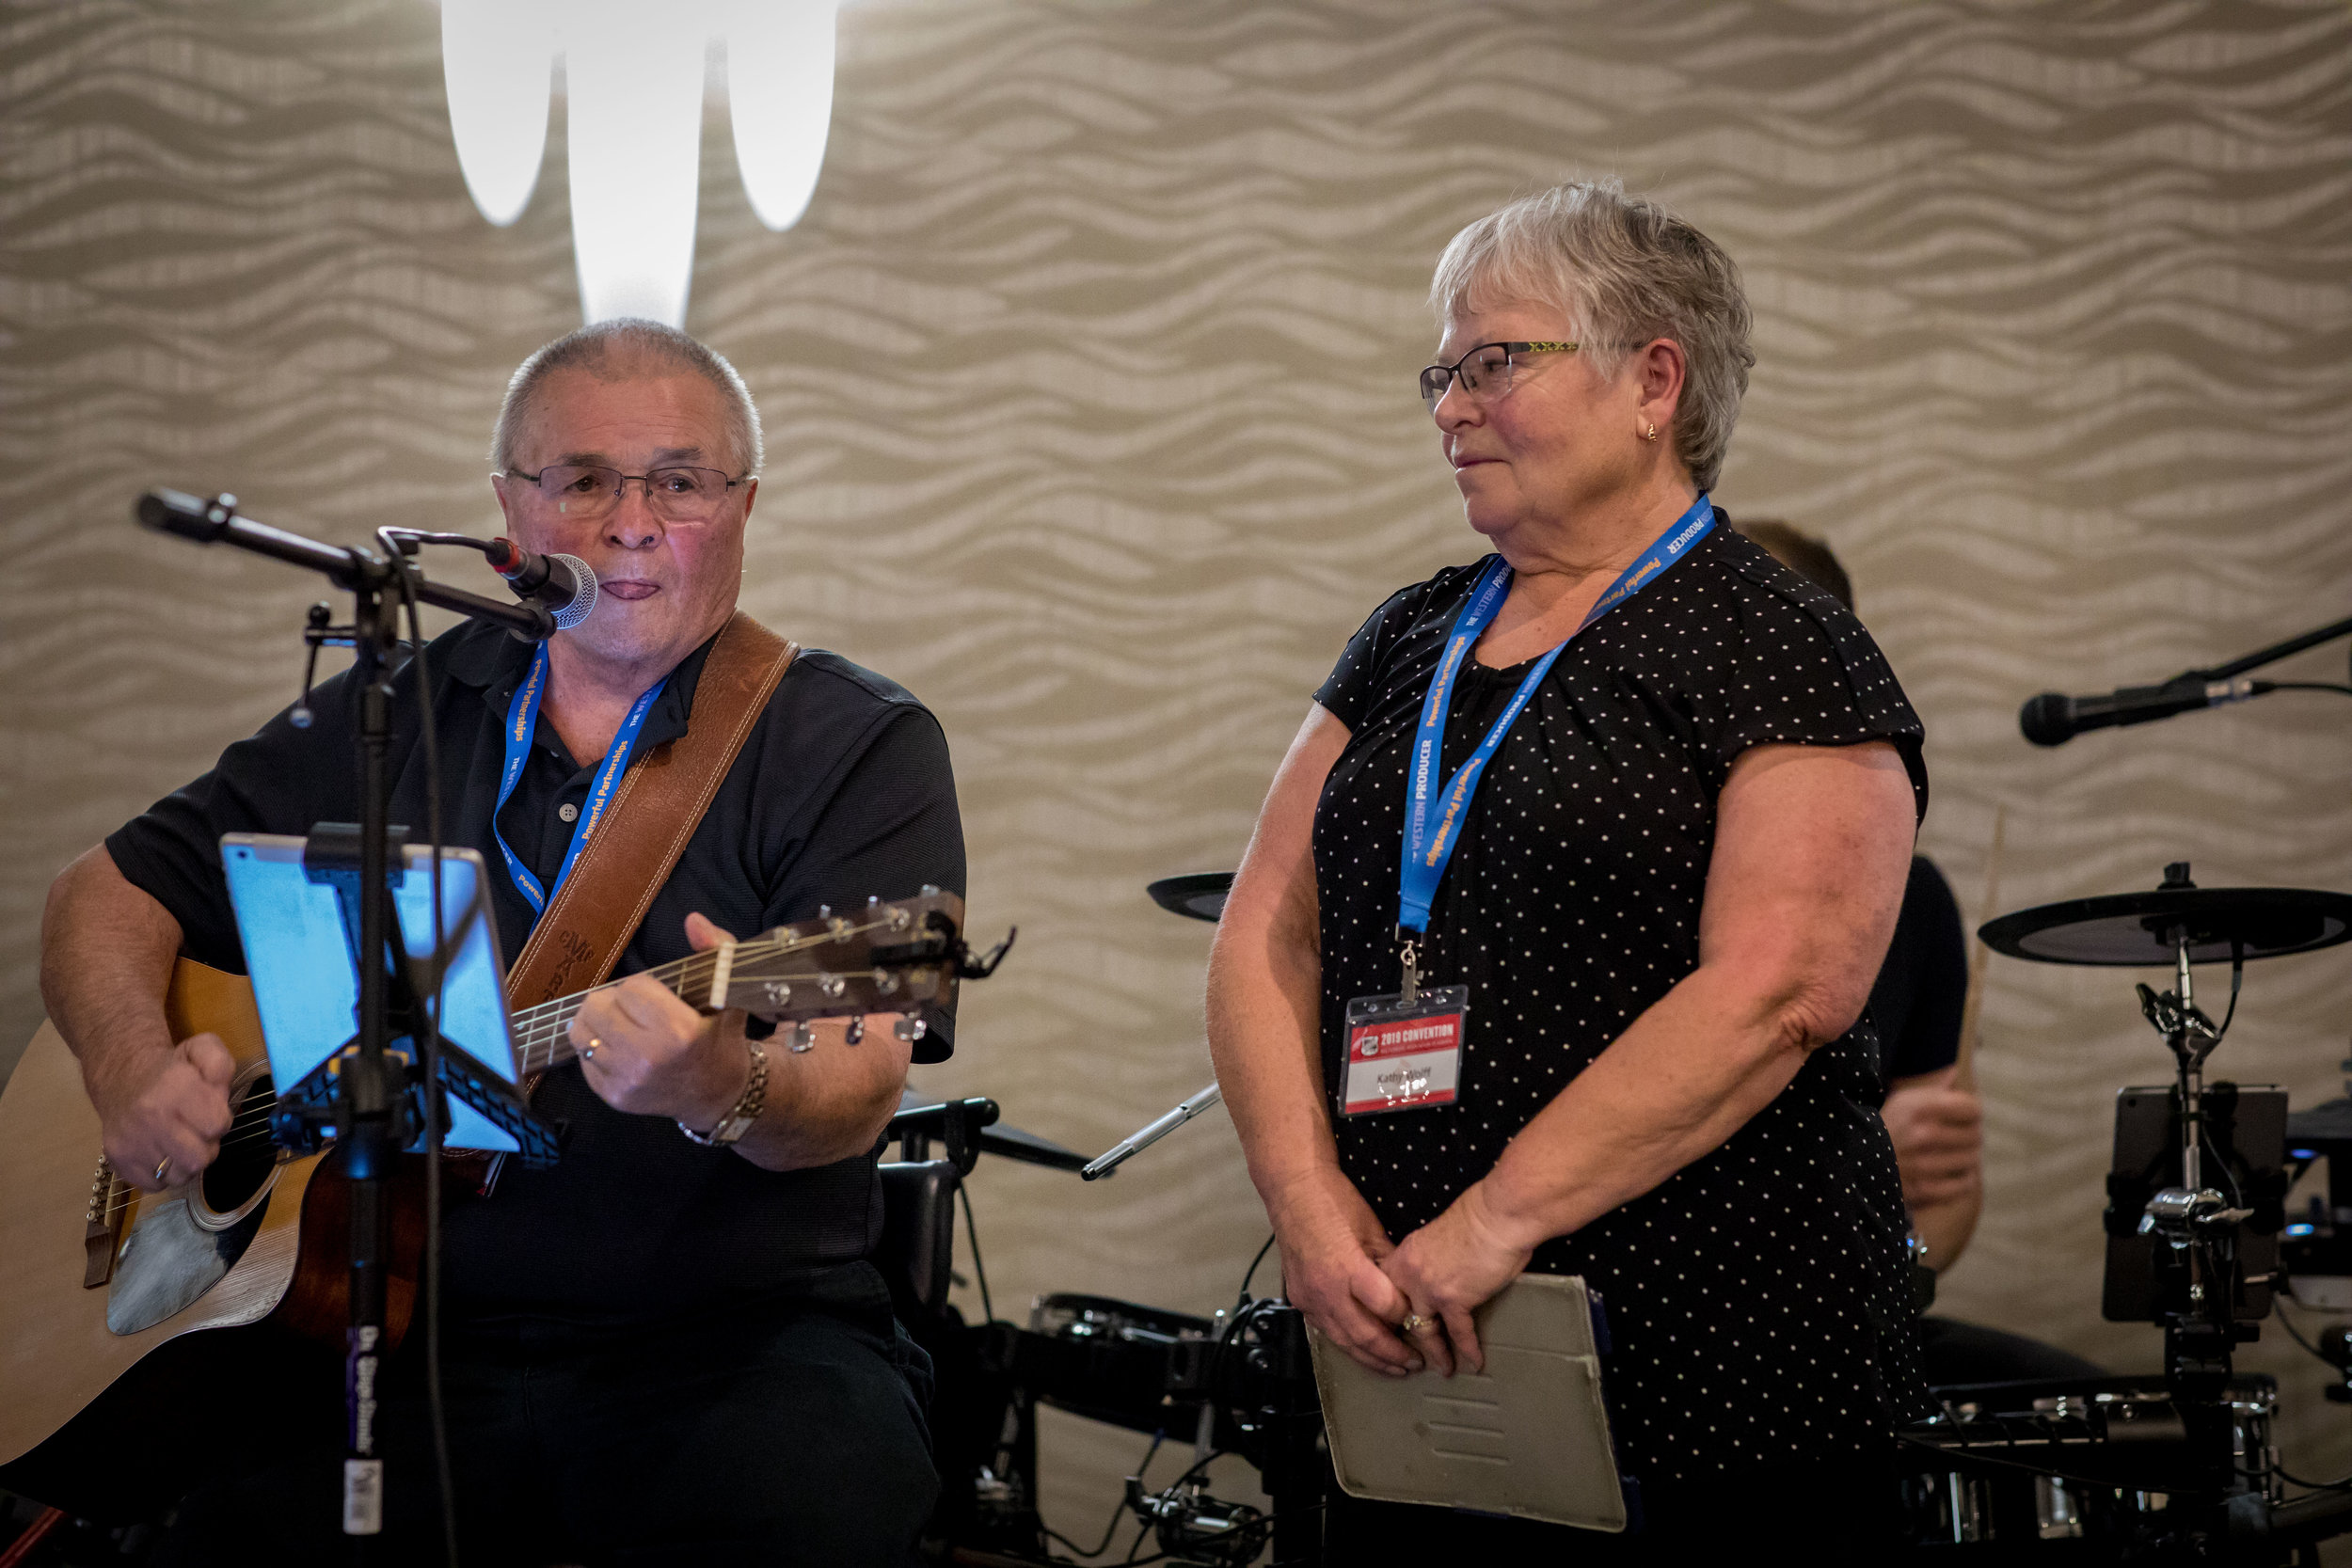 2019 01-31 Alberta Auctioneer Convention Day 01 - Calgary 60.jpg